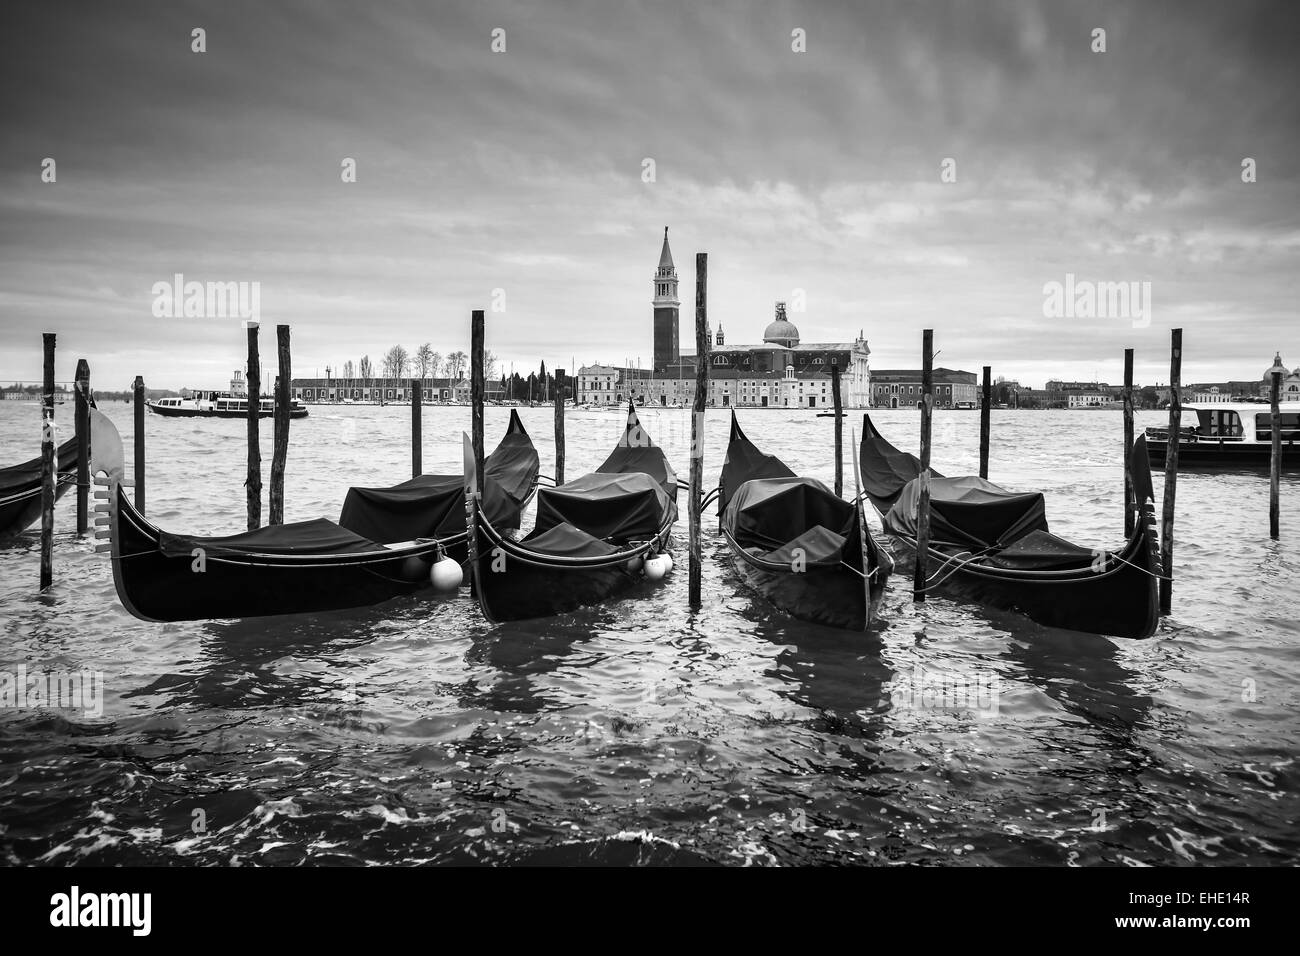 A view of the Church of San Giorgio Maggiore with gondolas parked in the water canal on Riva degli Schiavoni in - Stock Image